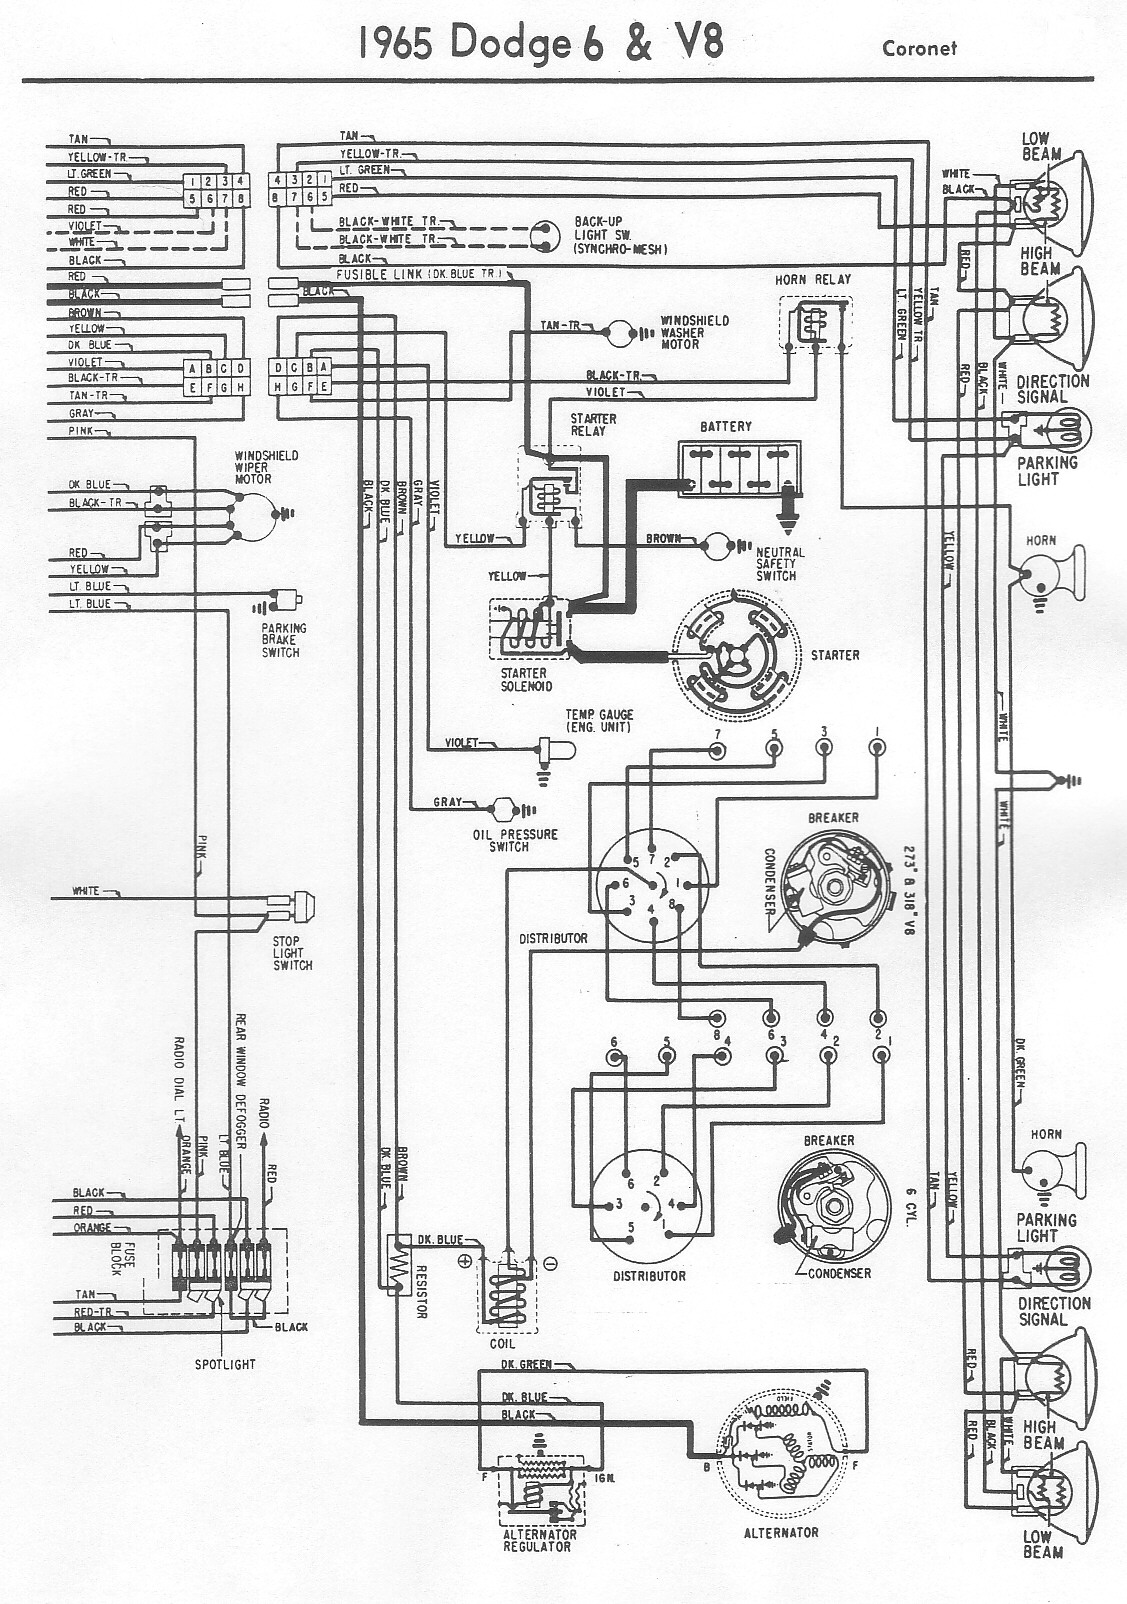 wiring diagram for 1966 dodge coronet wiring diagram todays dodge wiring diagram wires 1964 dodge coronet [ 1127 x 1604 Pixel ]